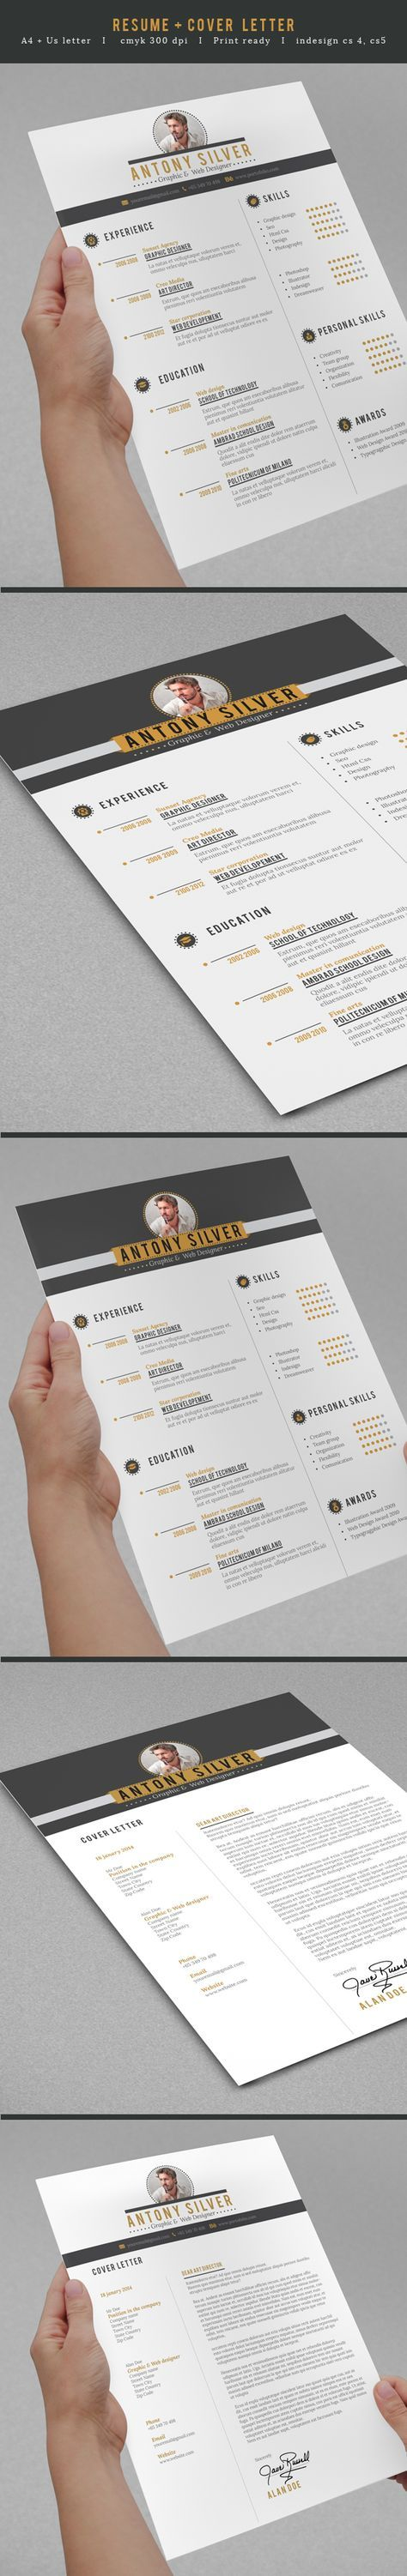 Tolle Grafikdesign Künstler Lebenslauf Galerie - Entry Level Resume ...